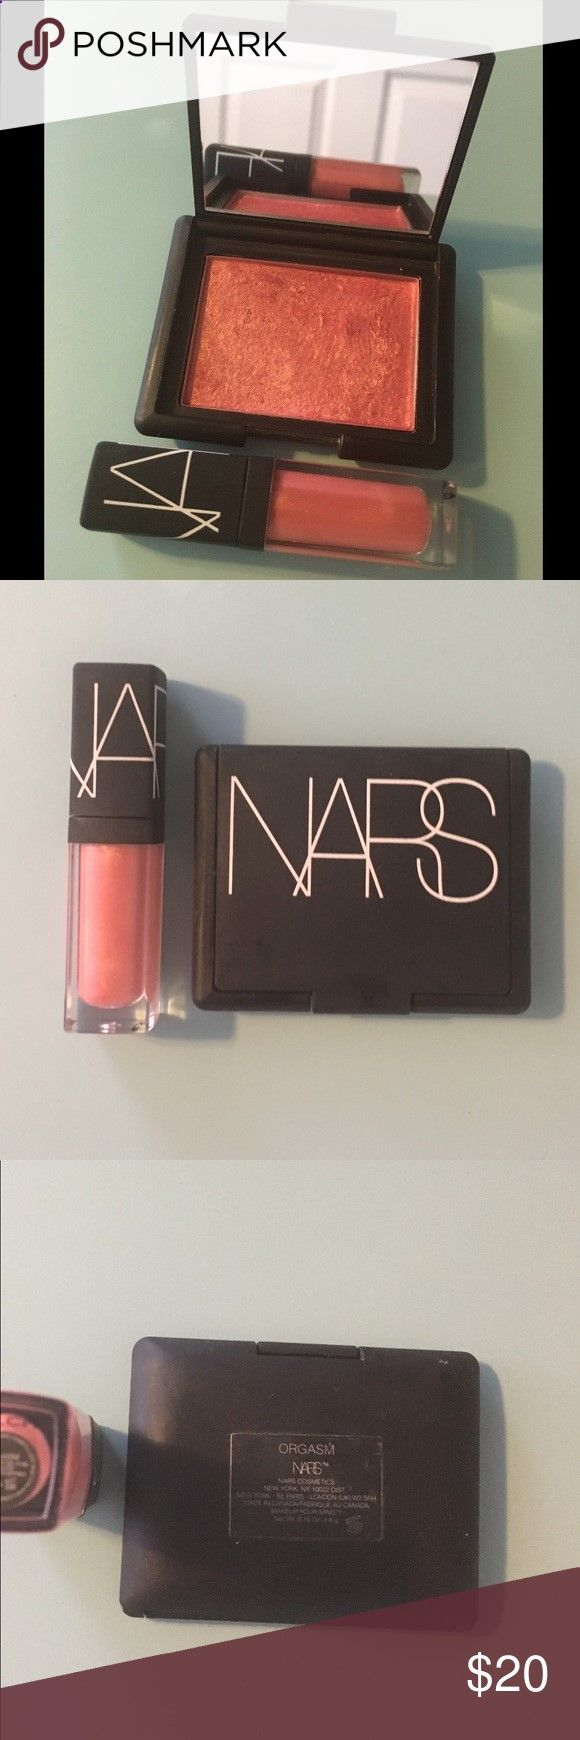 NARS Orgasm Blush and Mini Orgasm Lip Gloss! Barely used (maybe 4-5x) NARS Blush in Orgasm and never used, matching Orgasm lip gloss mini! Both are gorgeous shades of peachy pink--Orgasm Blush is well known for looking great on nearly all skin tones! Blush palette is at least 90% full! Brushes used on Blush were disinfected between applications! Thanks for looking! ❤️🌺❤️ NARS Makeup Blush